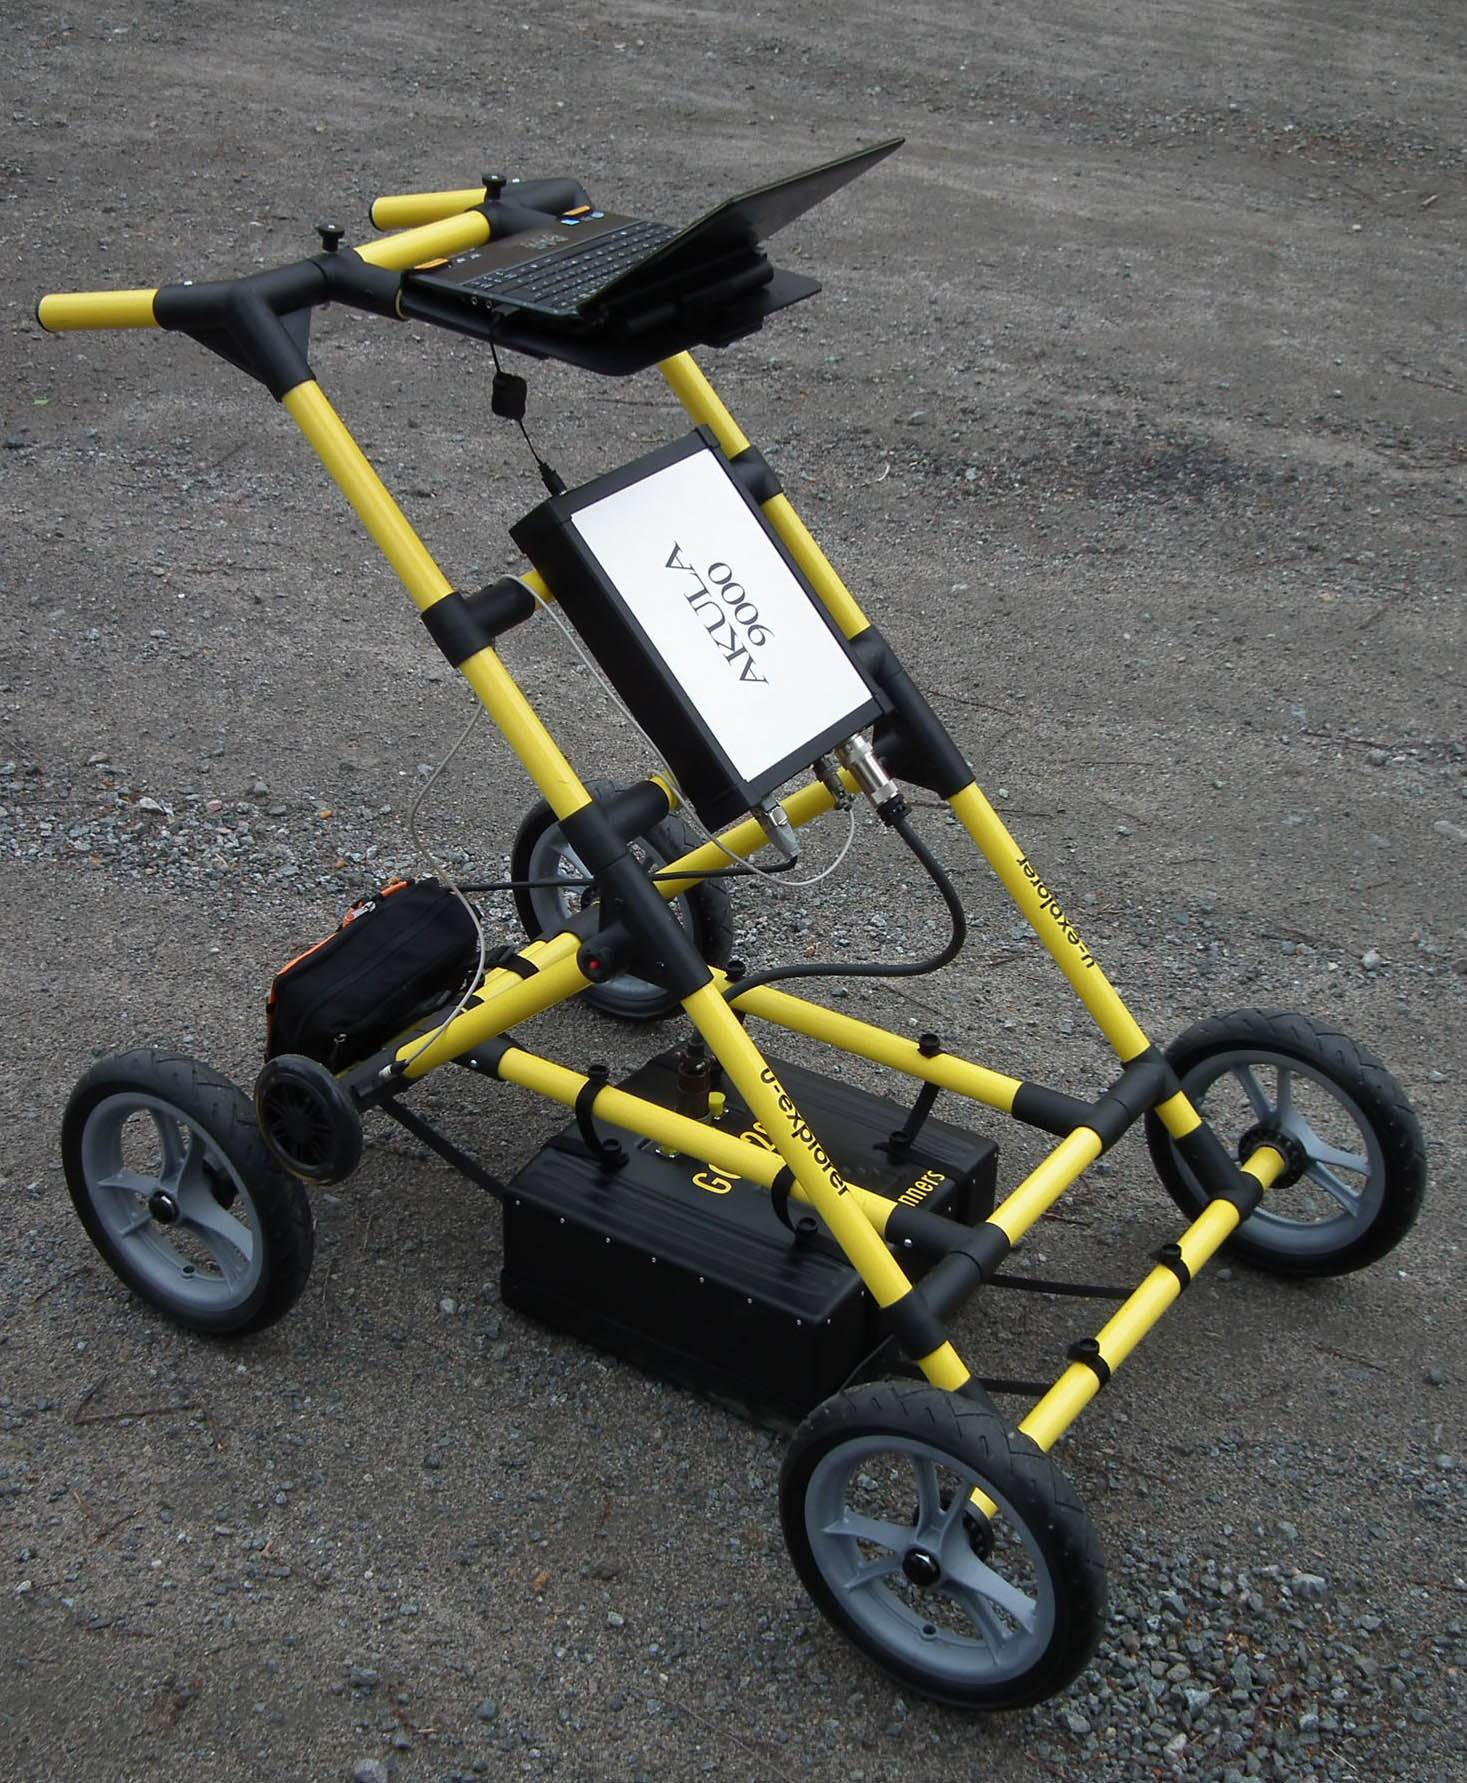 Geoscanners U-explorer Ground Penetrating Radar Manufacturer